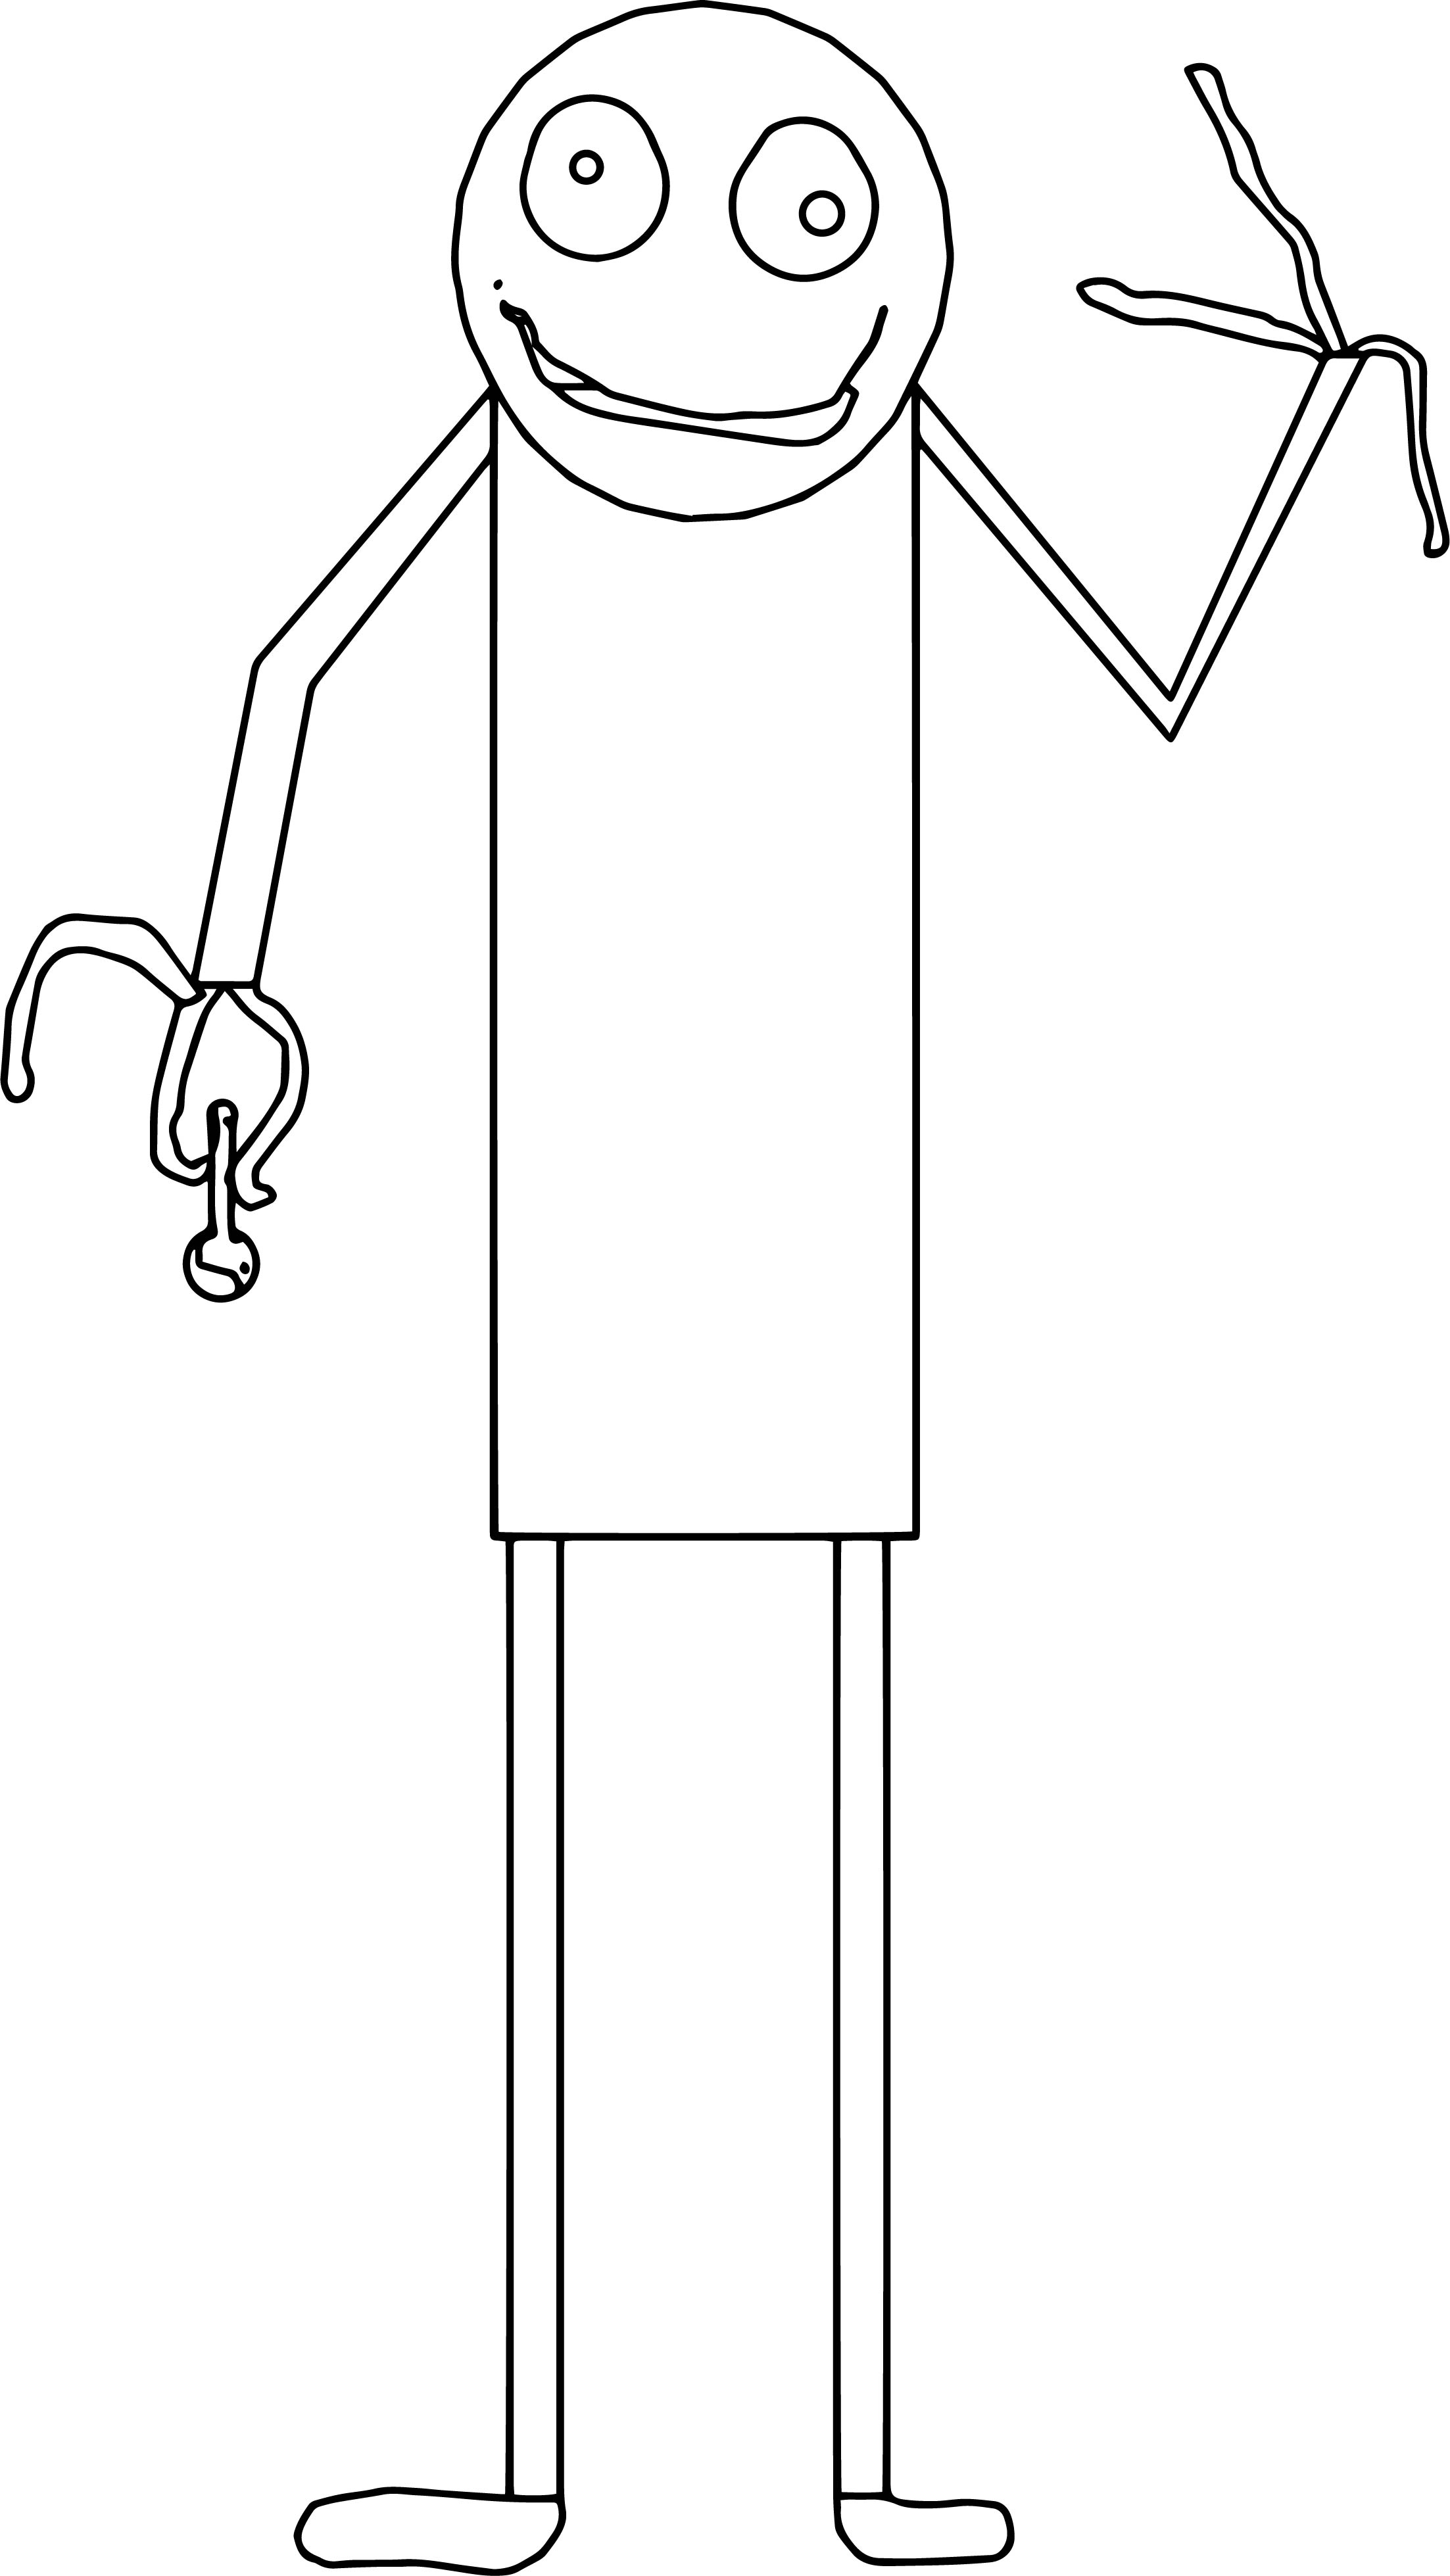 Salad Fingers Coloring Page